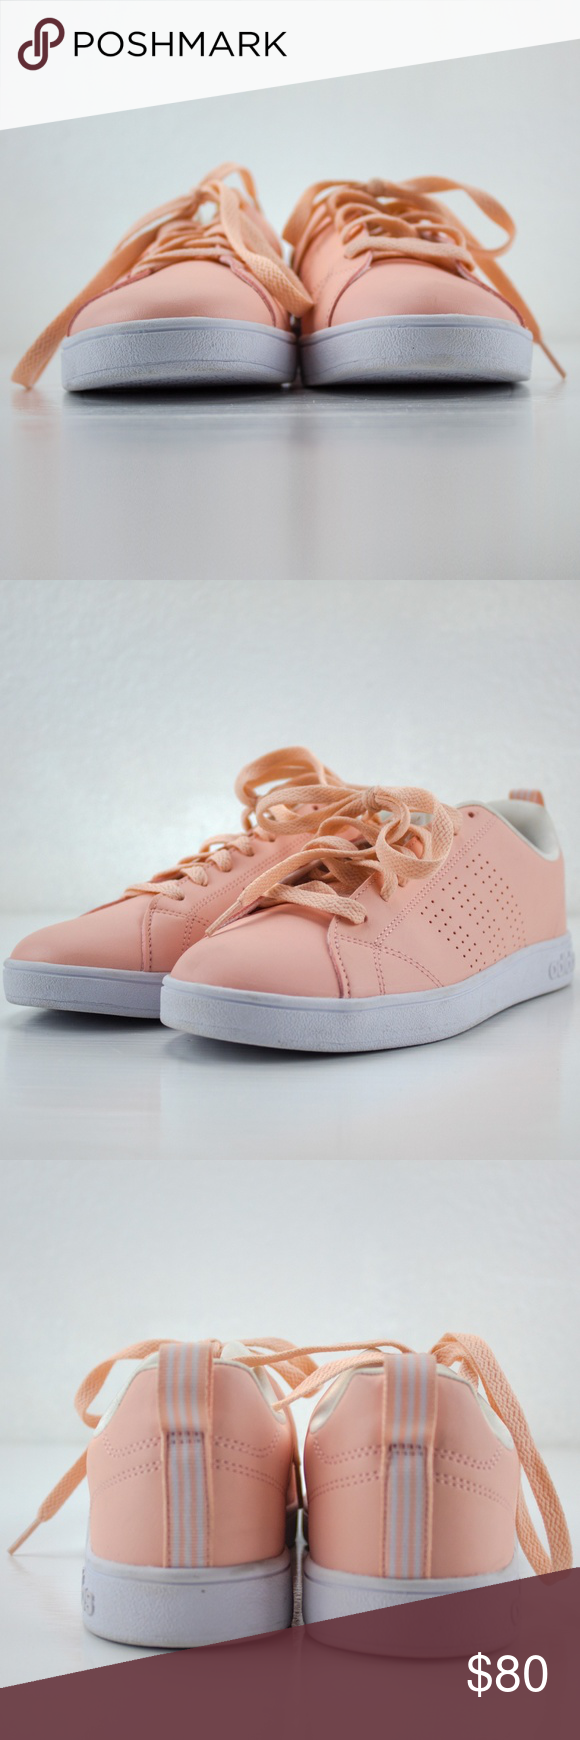 AUTHENTIS ADIDAS NEO PINK TRAINERS COMFORT FOOTBED Adidas VS ...